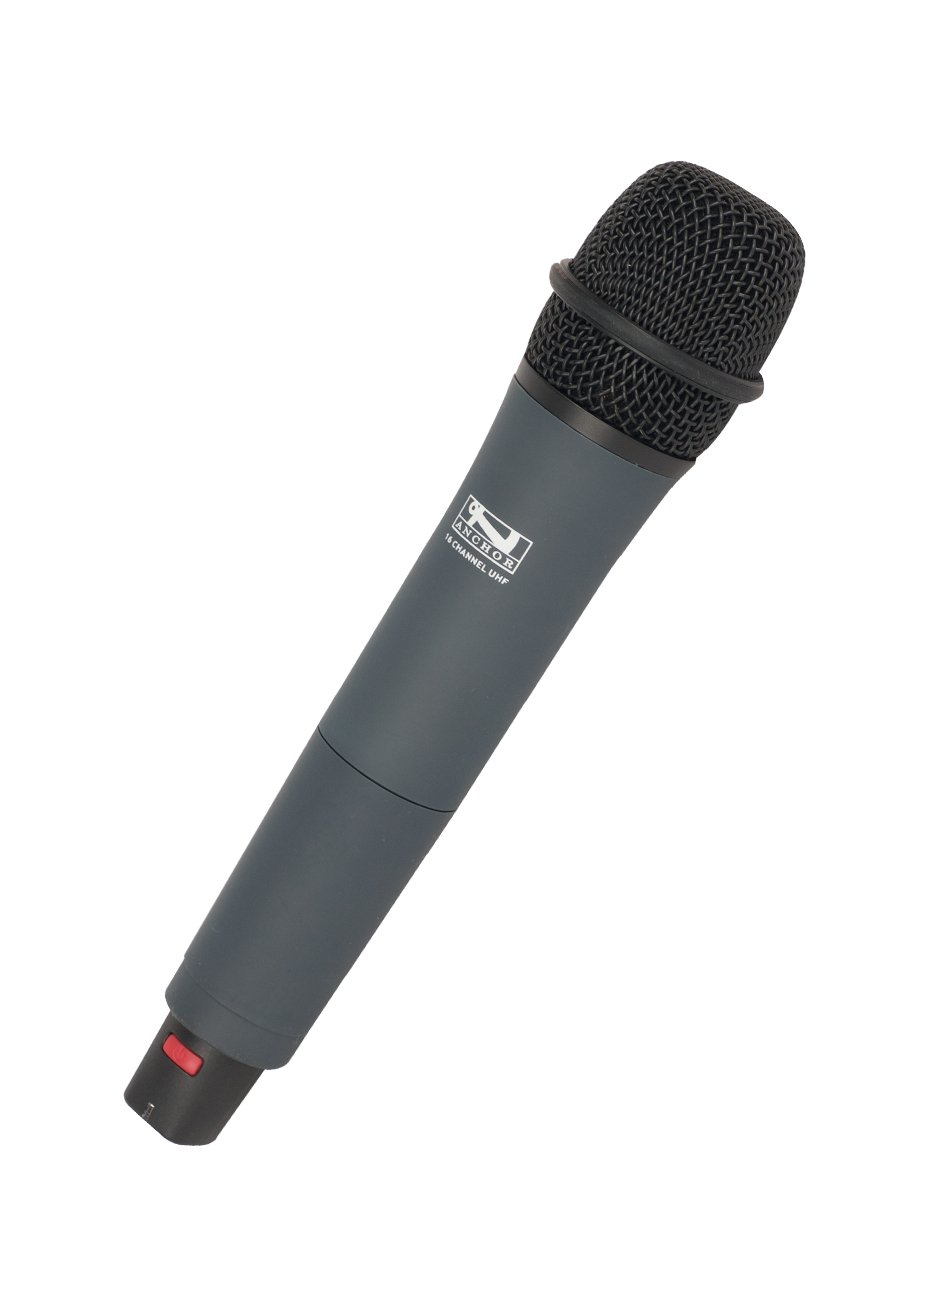 Anchor WH-6000 [RESTOCK ITEM] Wireless Handheld Microphone, 682-698 MHz Frequency Range WH6000-RST-06